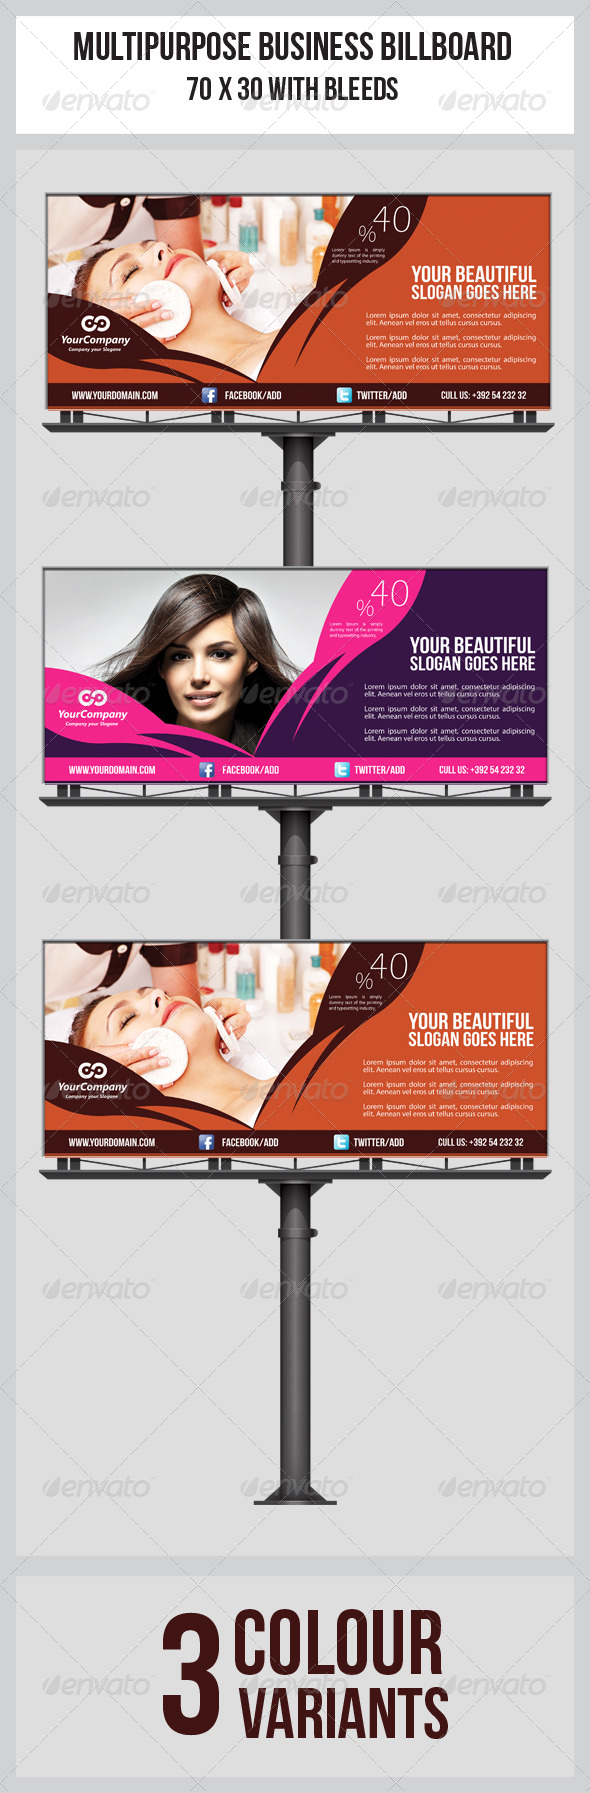 GraphicRiver Hair & Beauty Salon Business Billboard 5590092